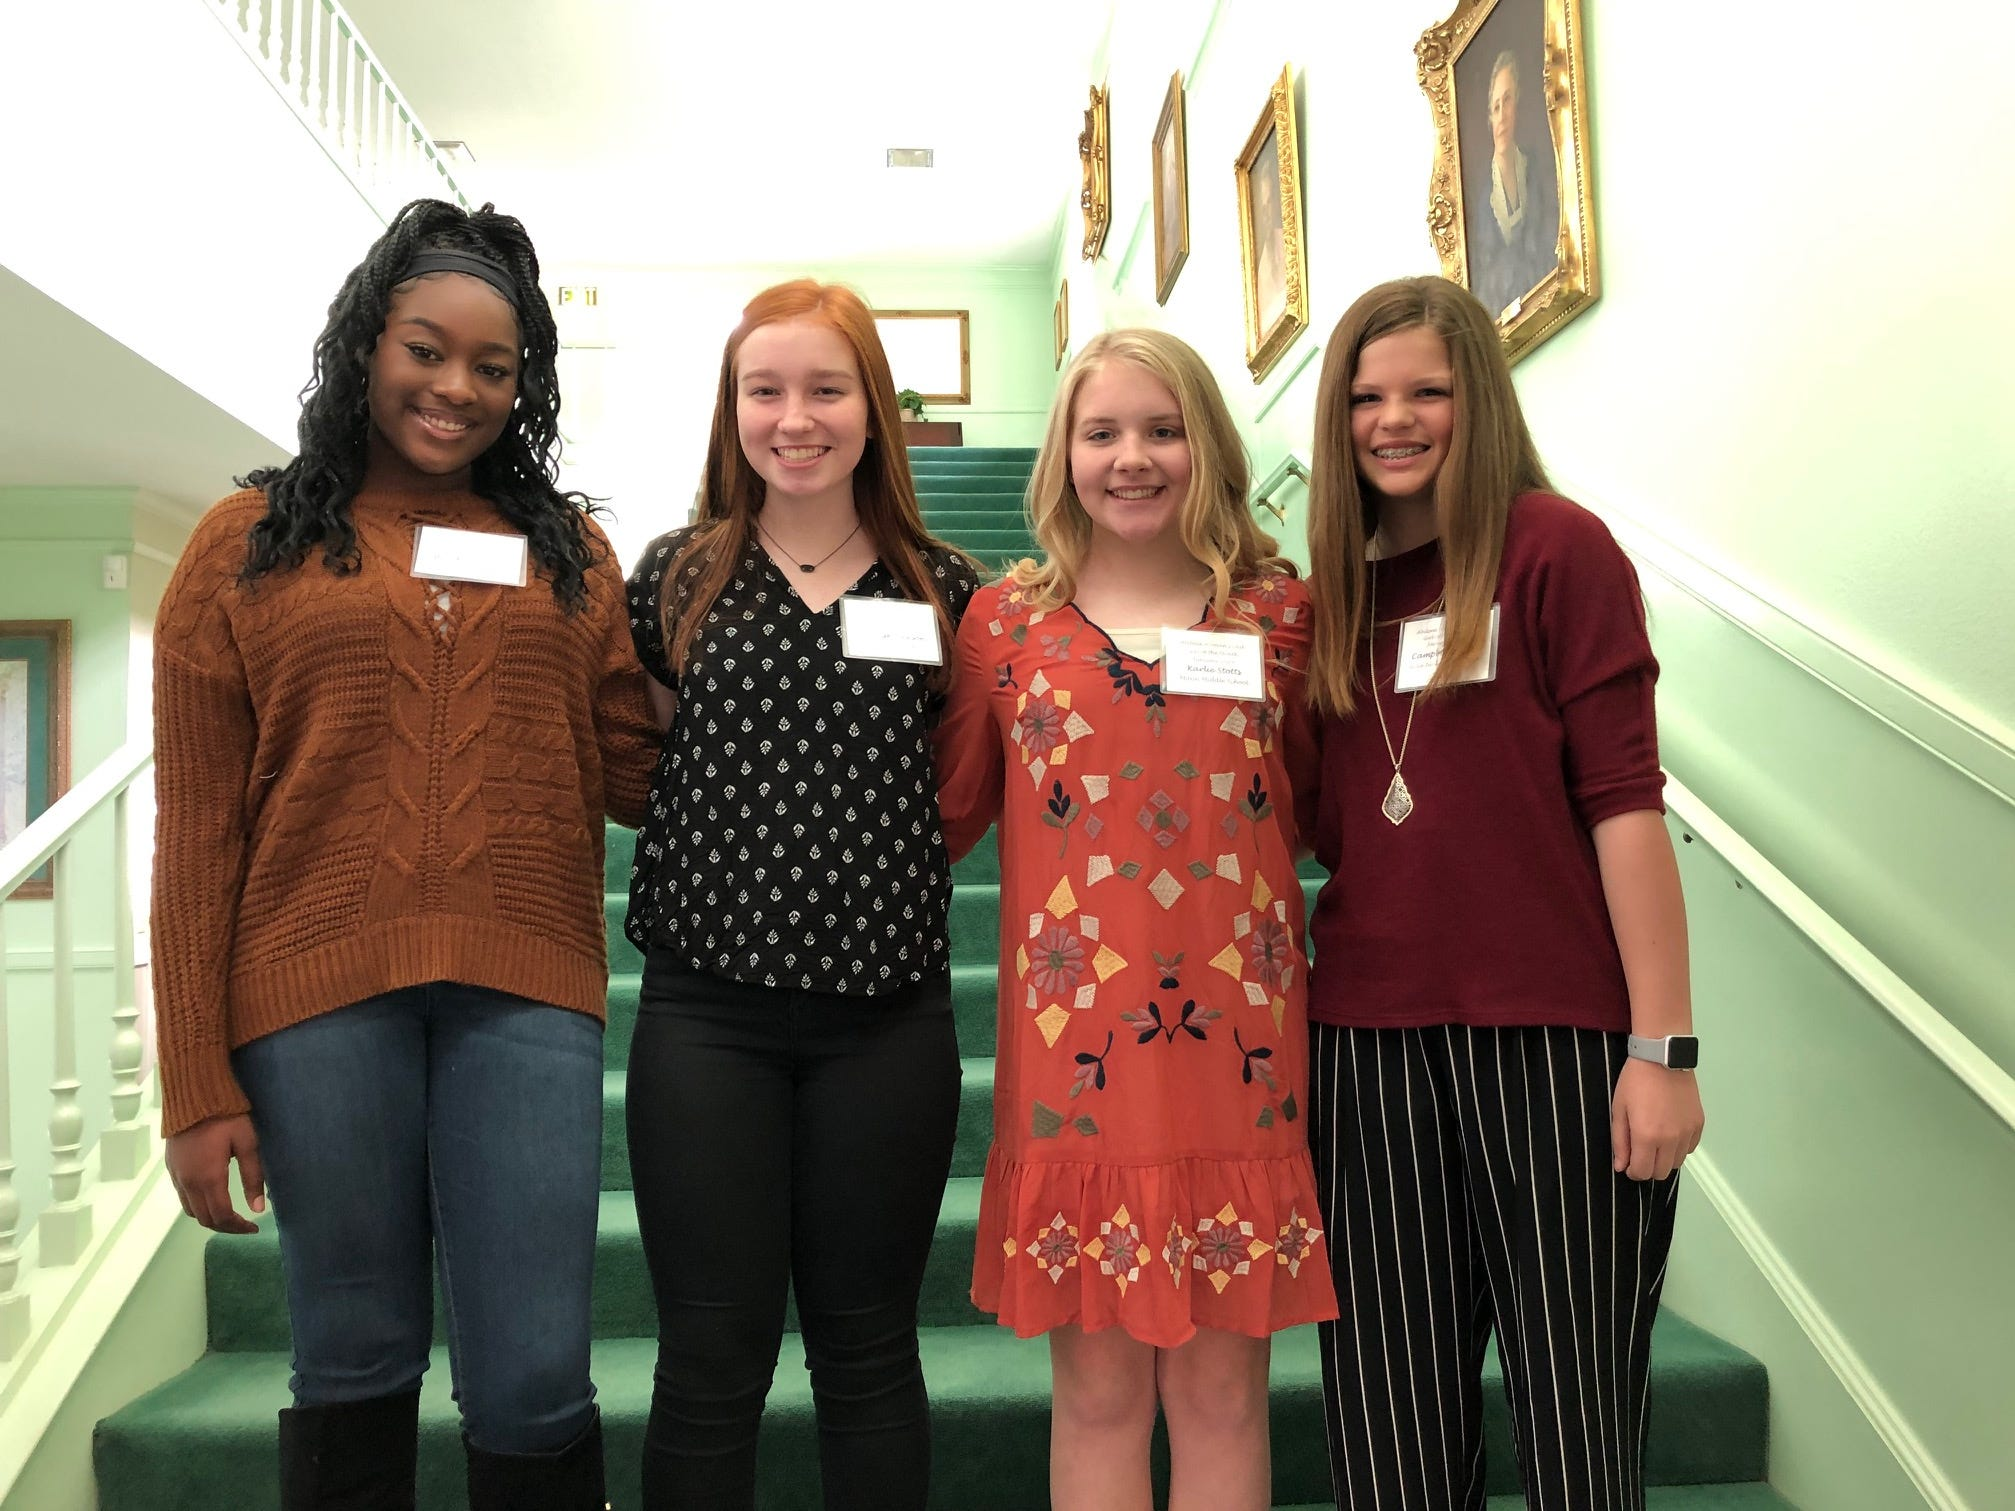 The January Girls of the Month at the Abilene Woman's Club. From left: Brooklyn Jones, Clack Middle School; Ryleigh Lawson, Craig Middle School; Karlie Stotts, Mann Middle School; and Campbell Beard, Wylie Middle School. Not pictured: Sydney Smith, Madison Middle School.